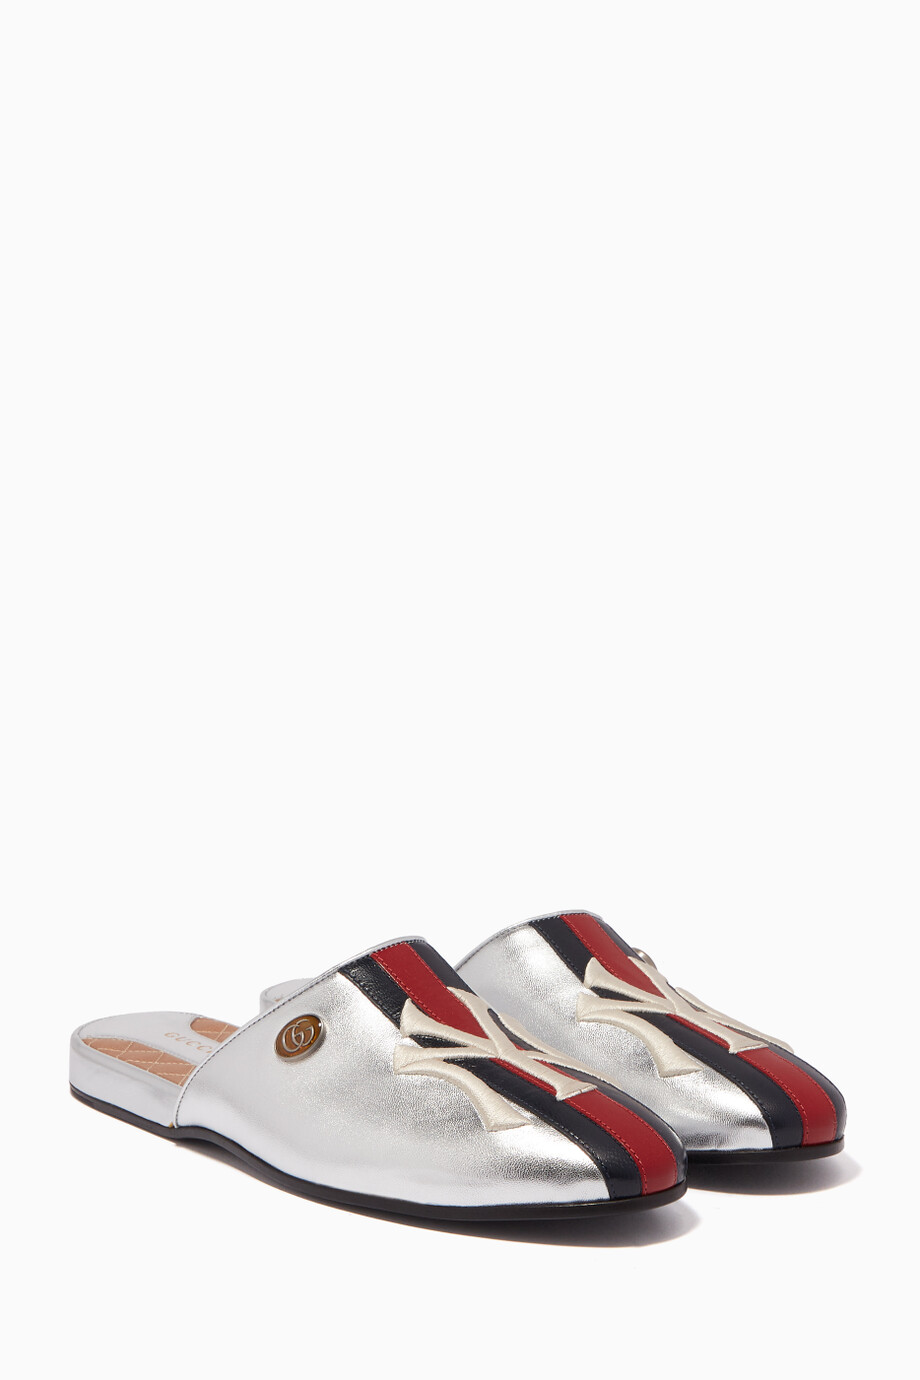 83168b48543 Shop Gucci Silver Metallic-Silver NY Yankees™ Patch Slippers for ...